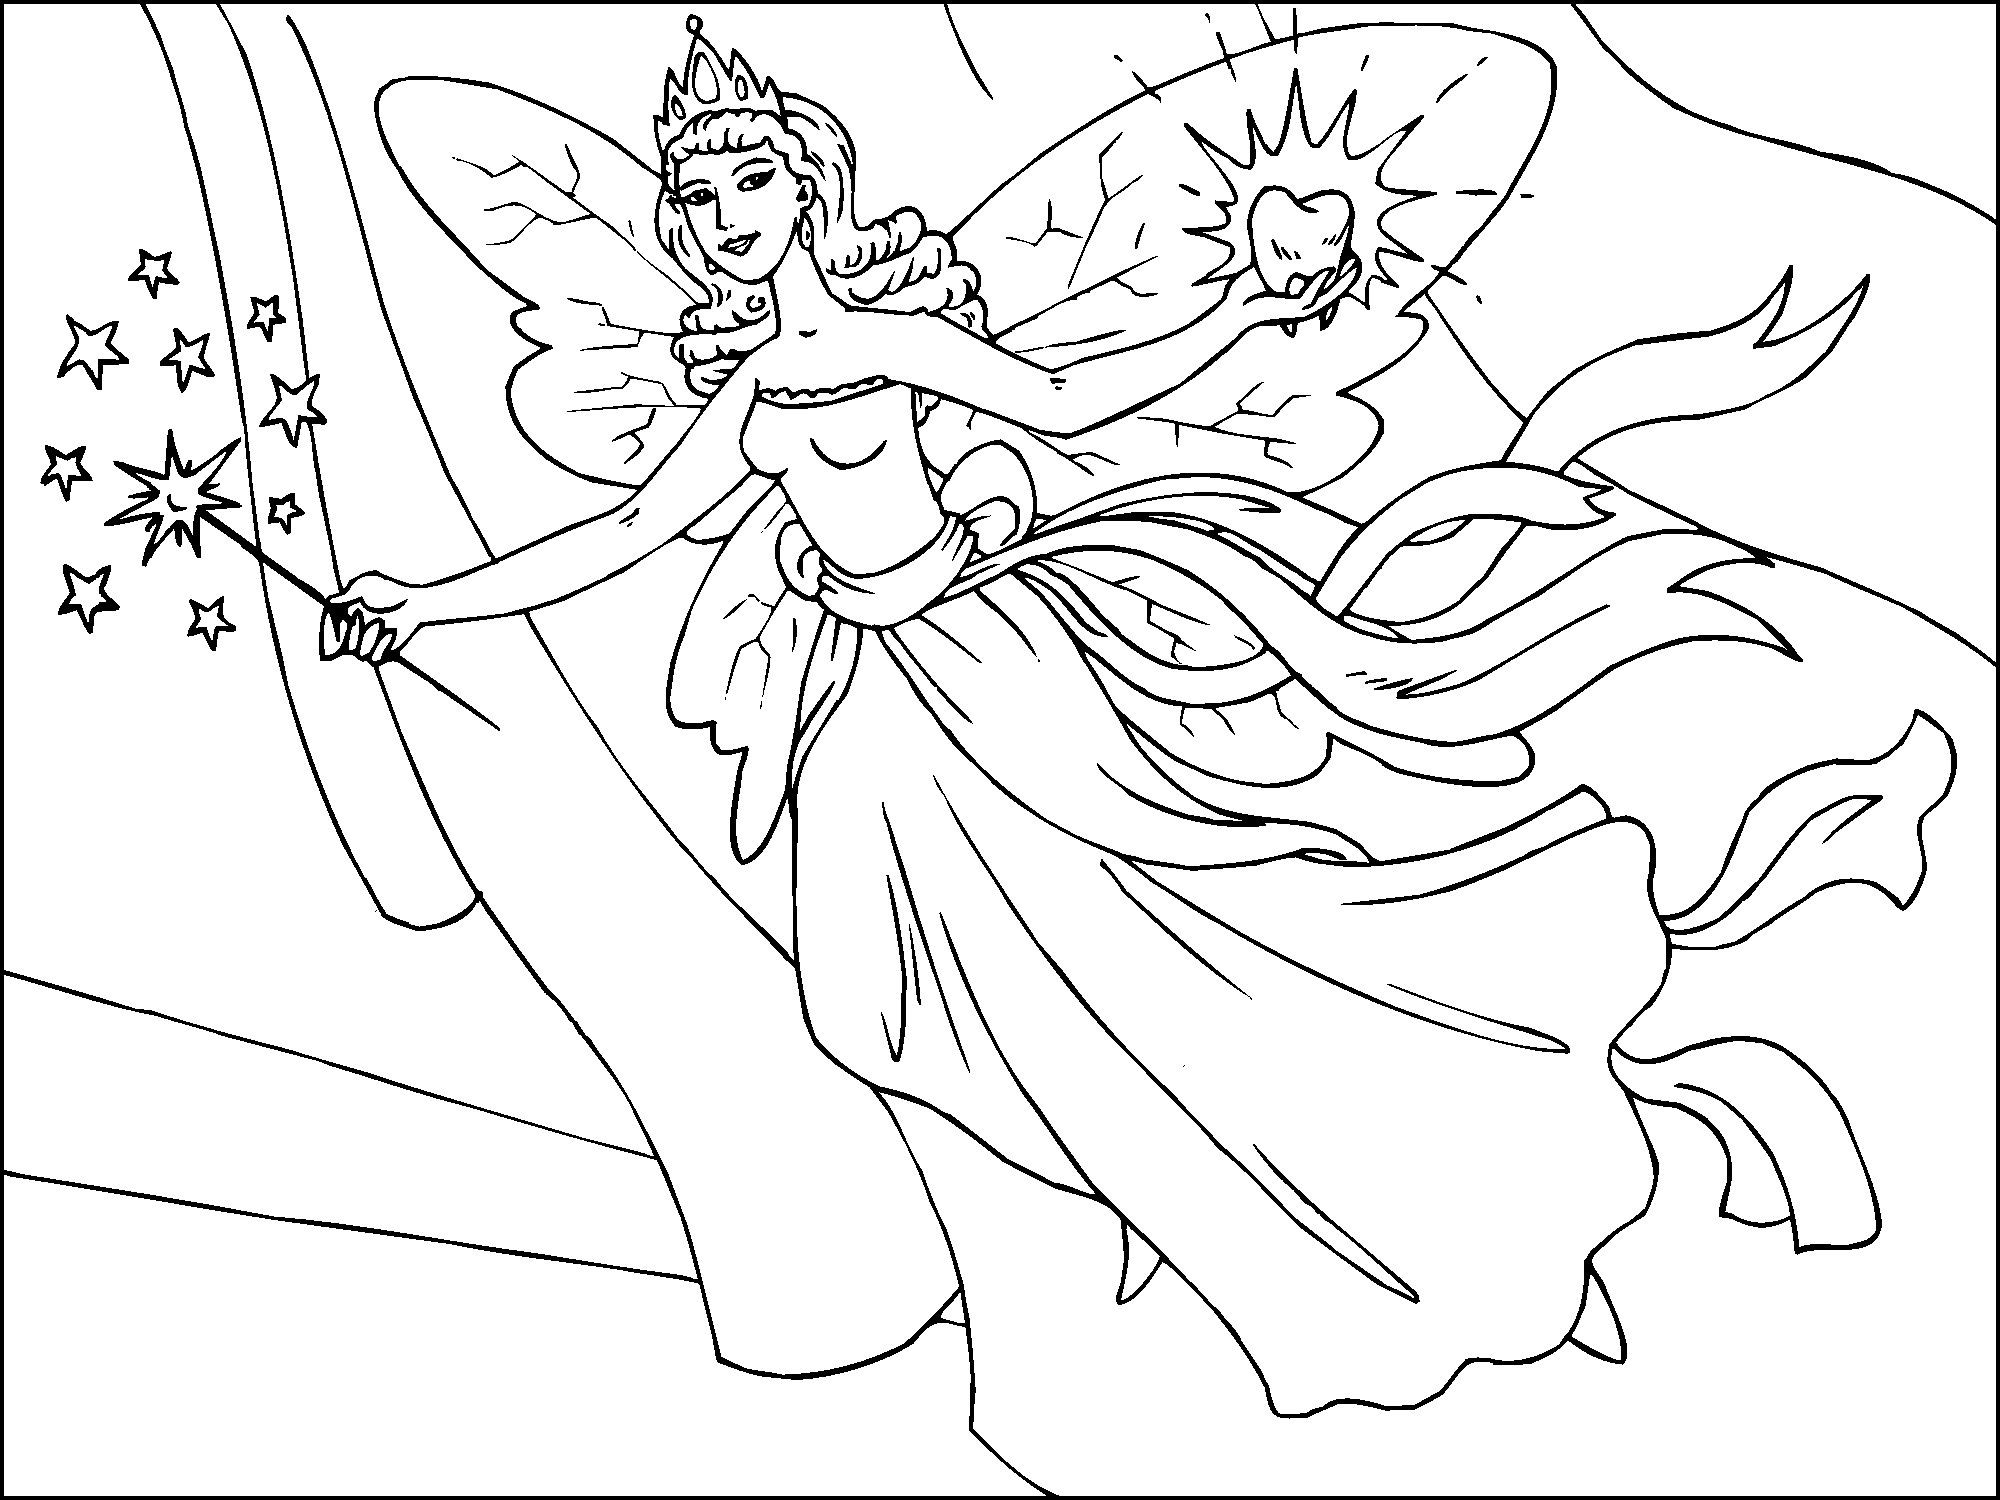 Free Printable Fairy Coloring Pages For Kids   Everything - Free Printable Fairy Coloring Pictures